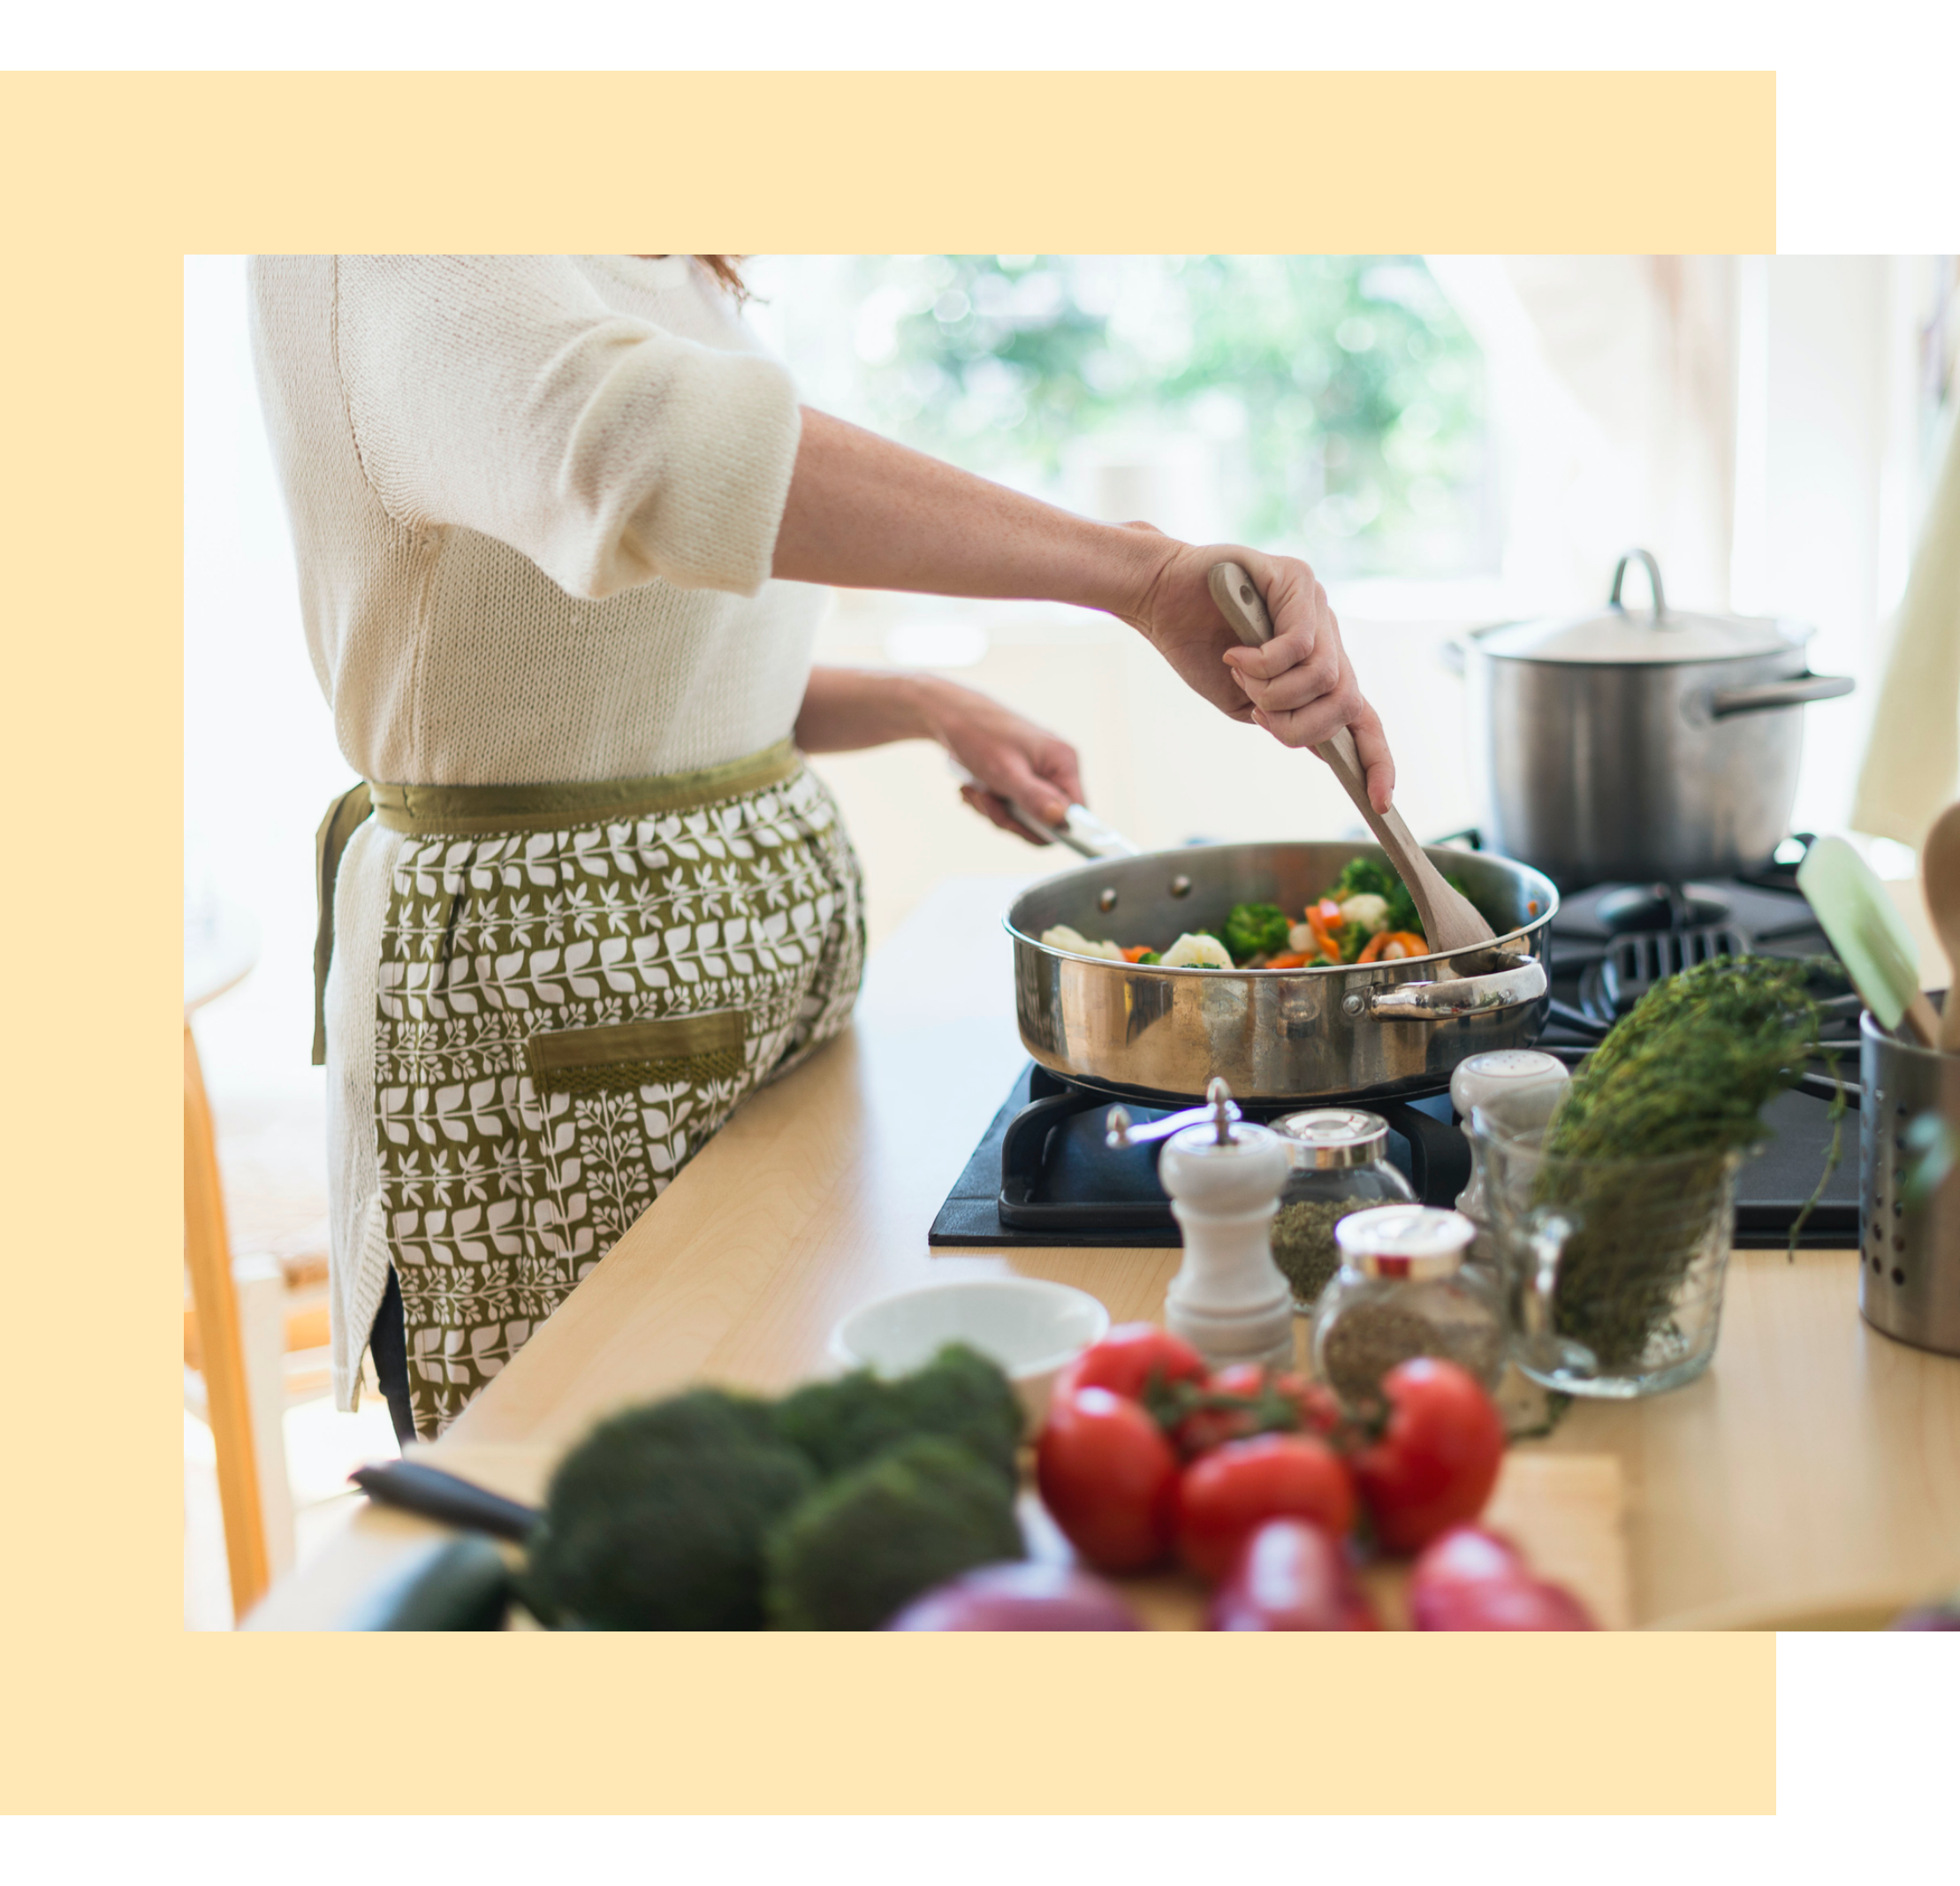 A woman is preparing a pan full of veggies in a kitchen.